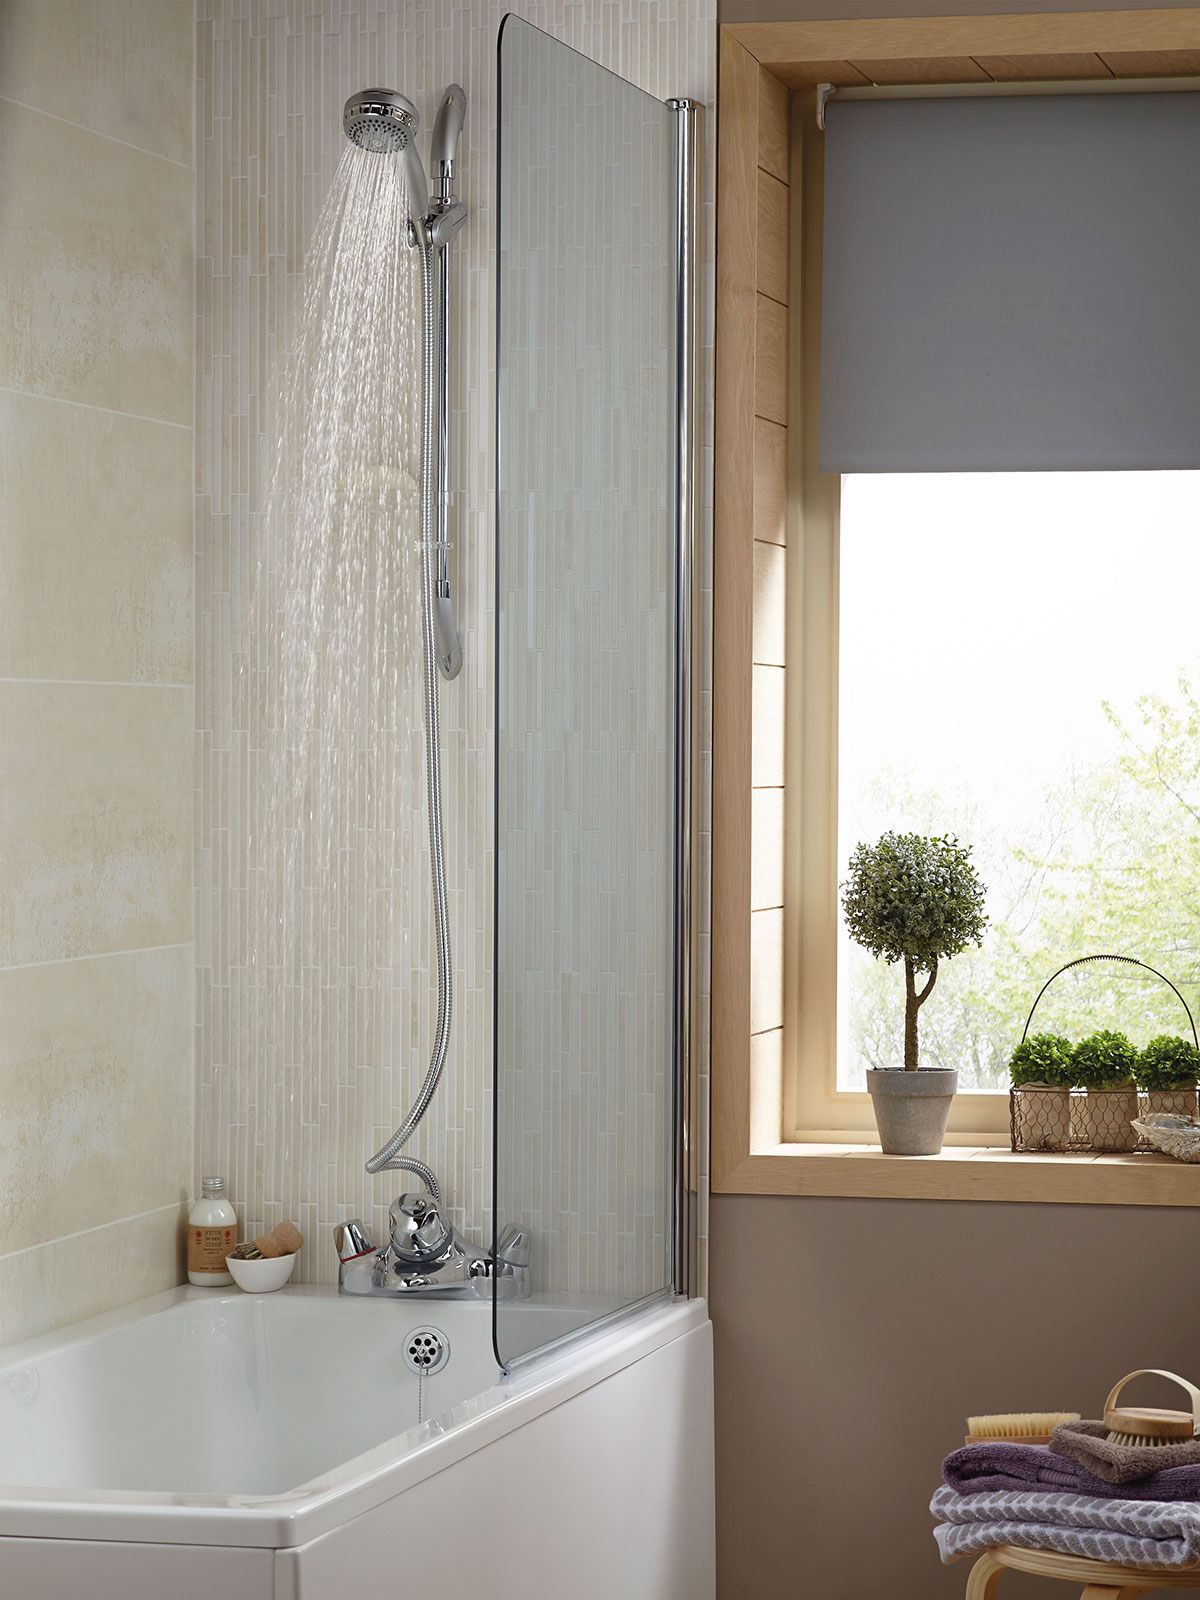 Low Pressure Thermostatic Bath Shower Mixer aqualisa aquamixa thermostatic bath shower mixer tap - gravity/main fed